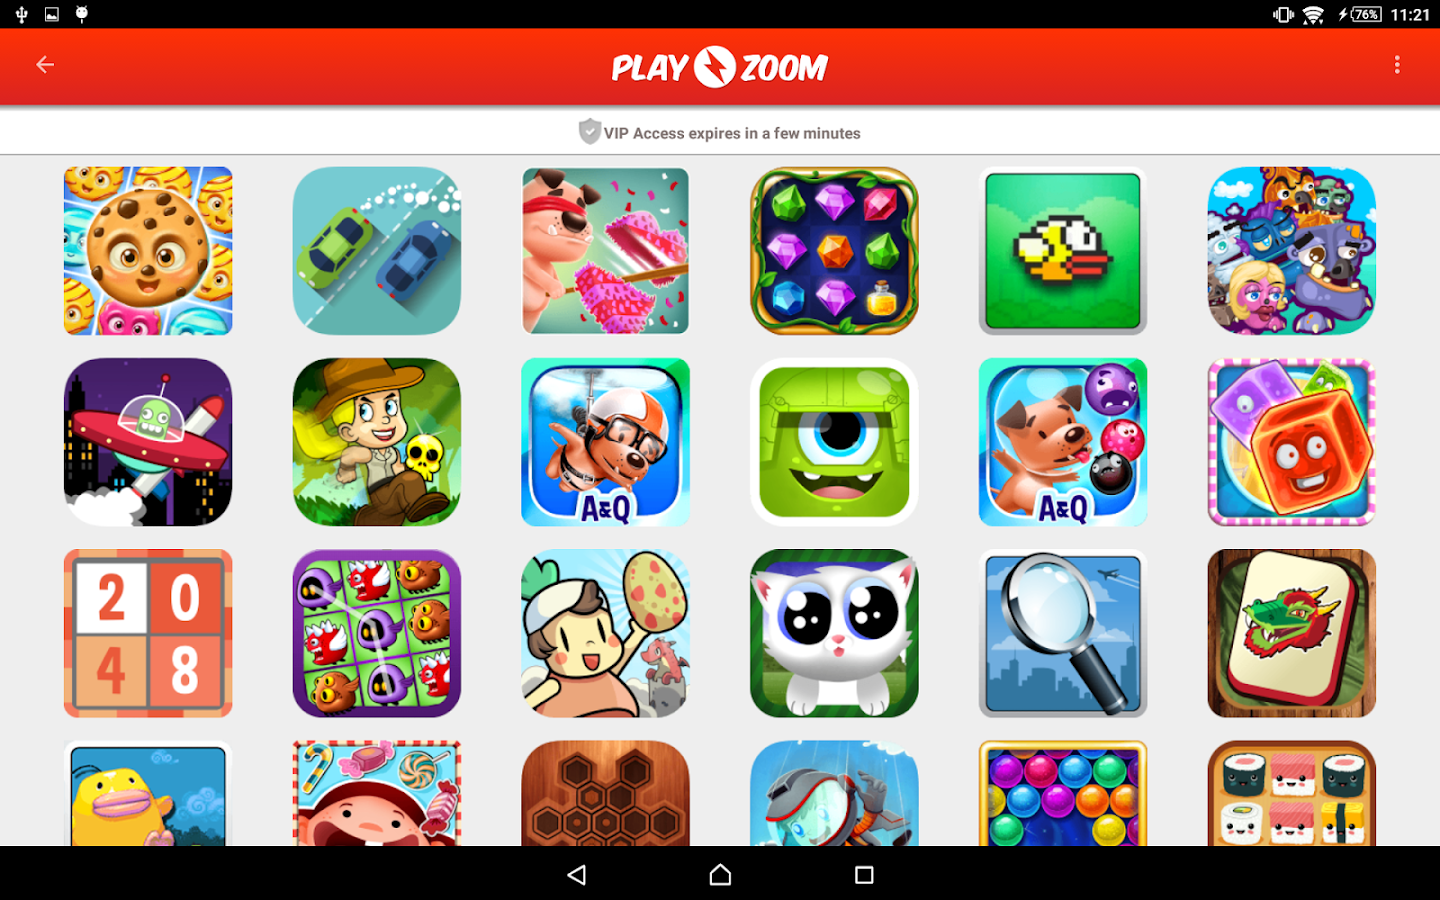 Playzoom Screenshot 6